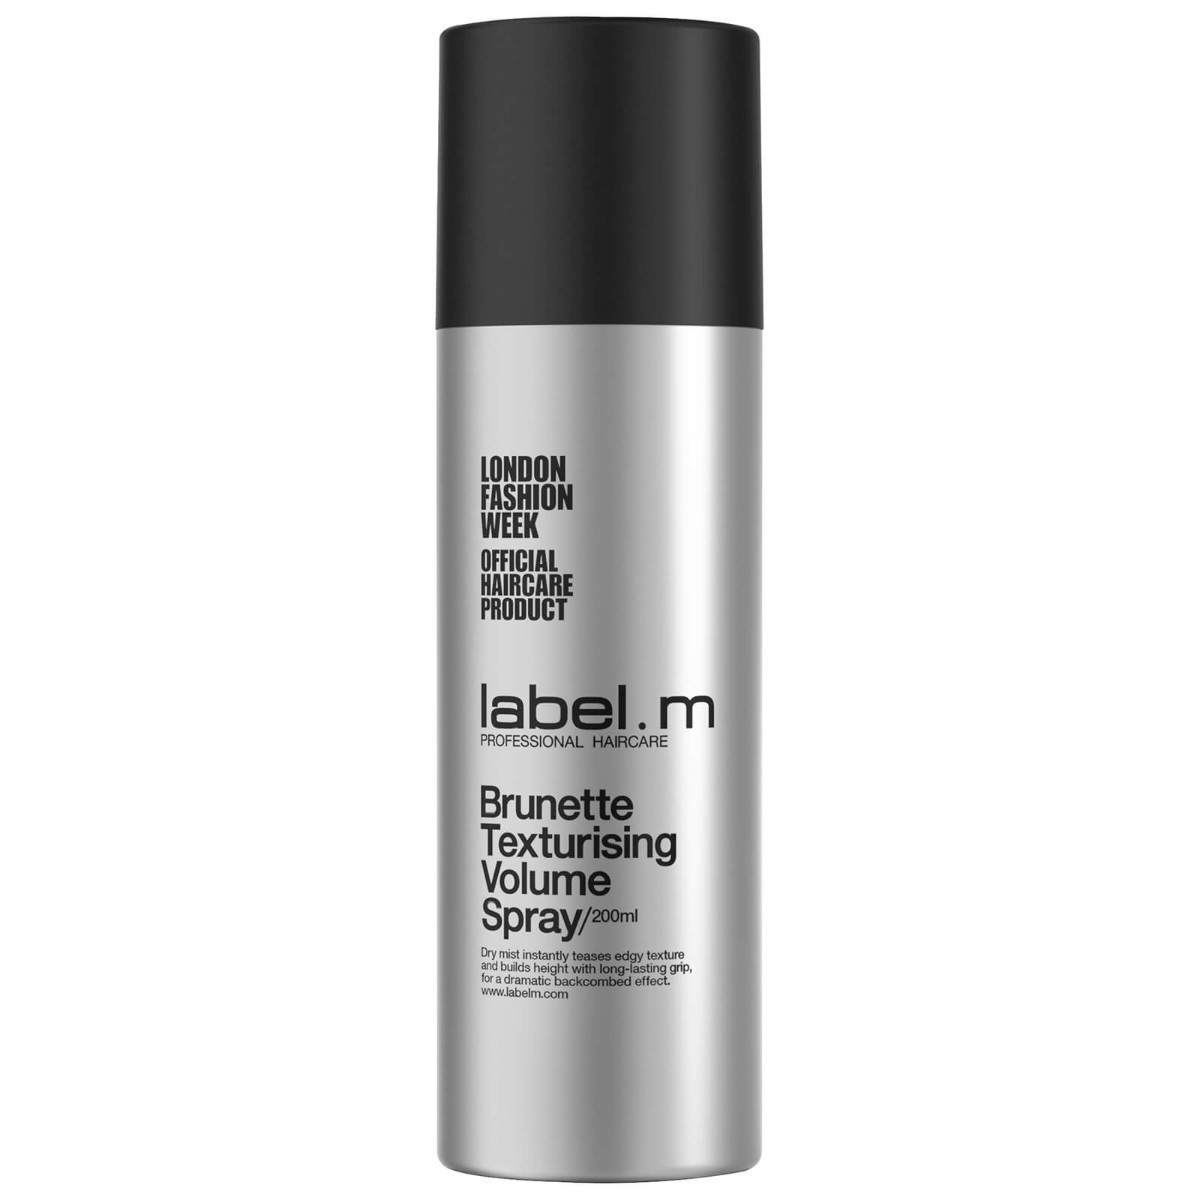 Label.m Brunette Texturizing Volume Spray 200ml